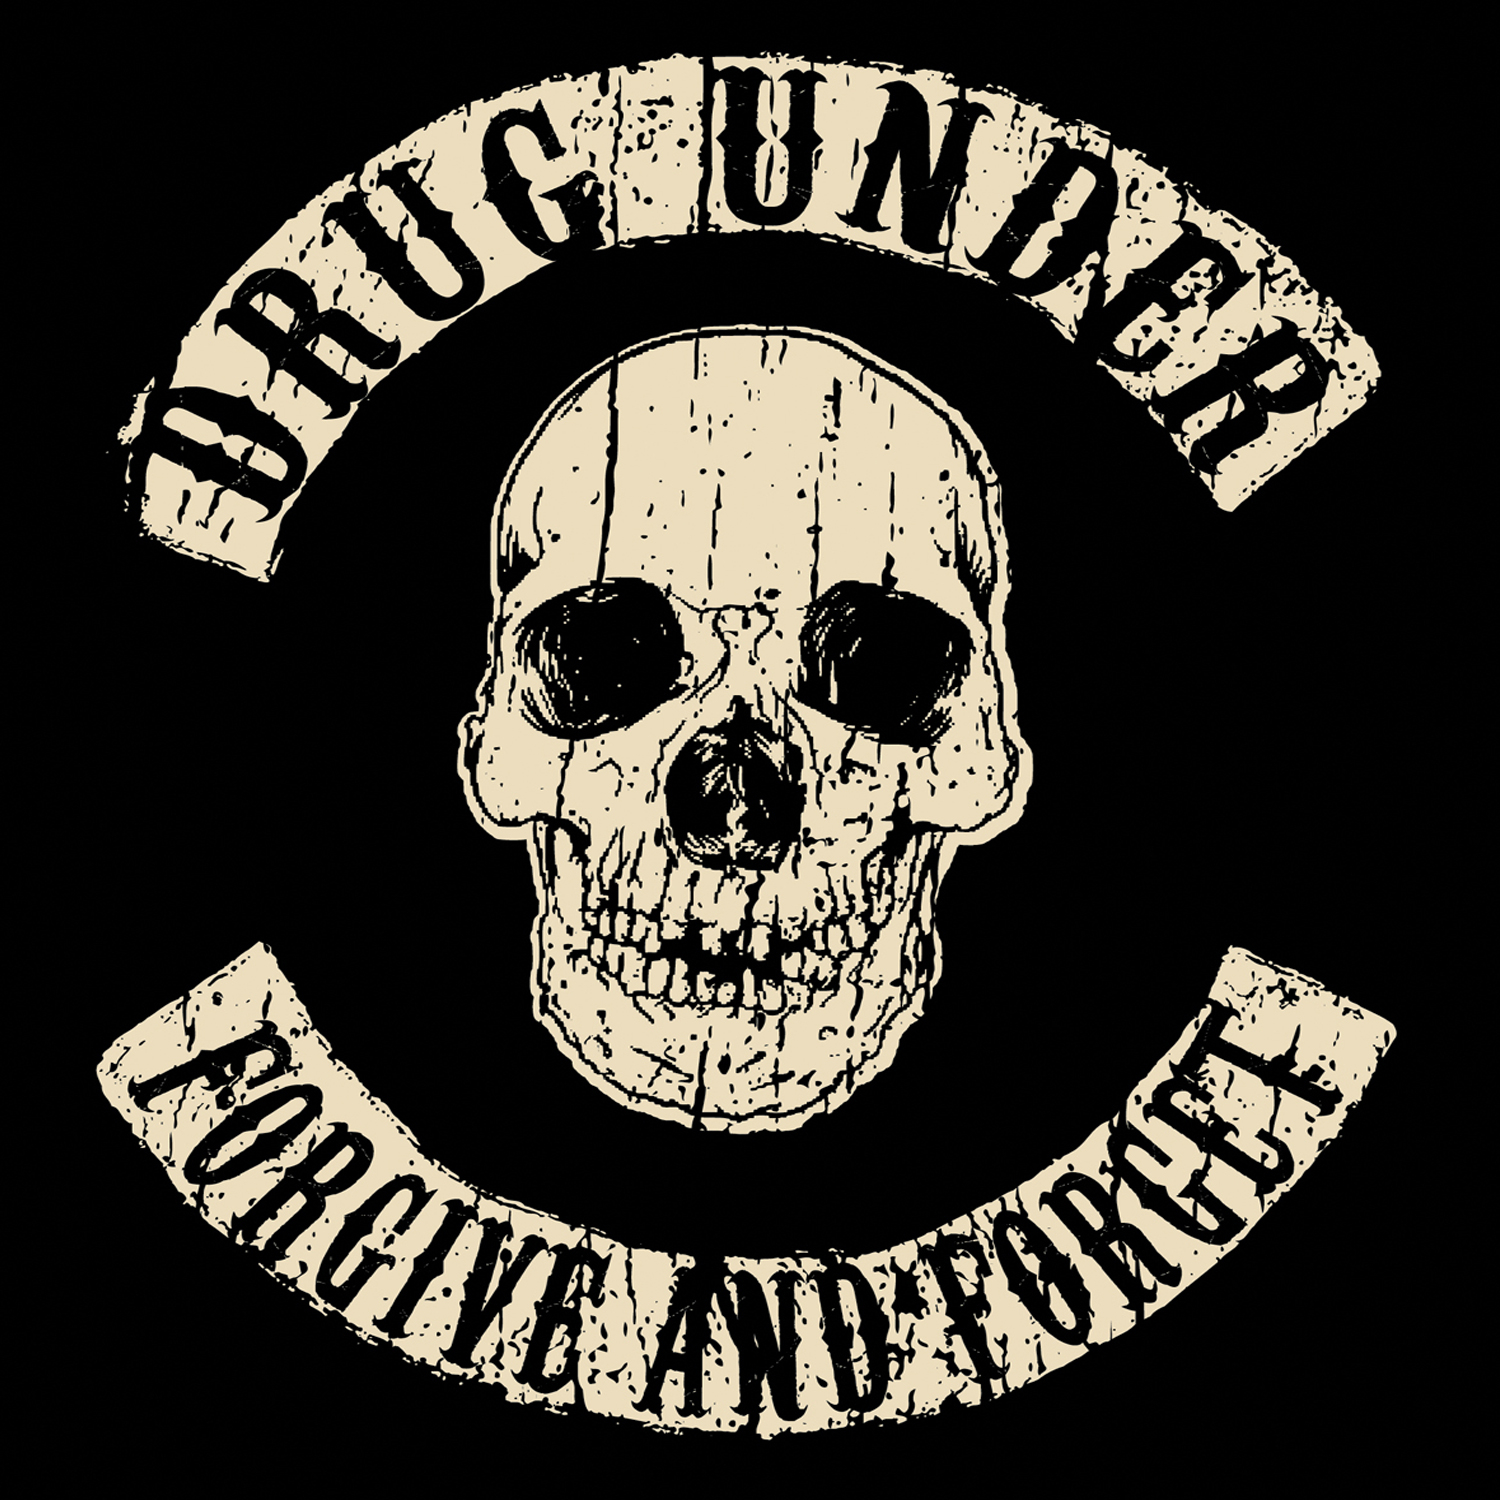 drug_under-forgive_and_forget_pictures